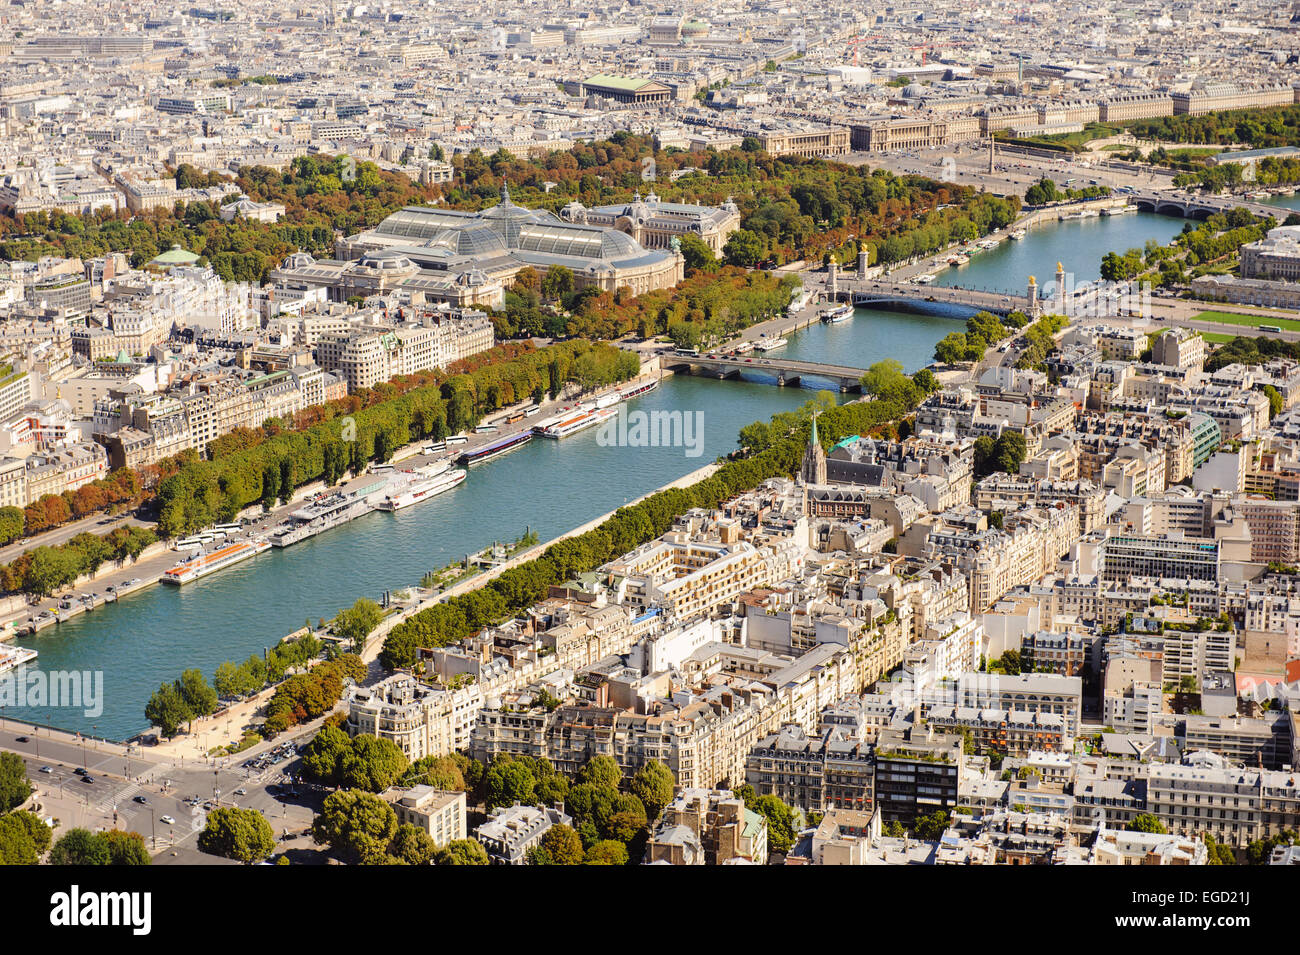 Aerial view of Paris from Eiffel Tower. France Stock Photo